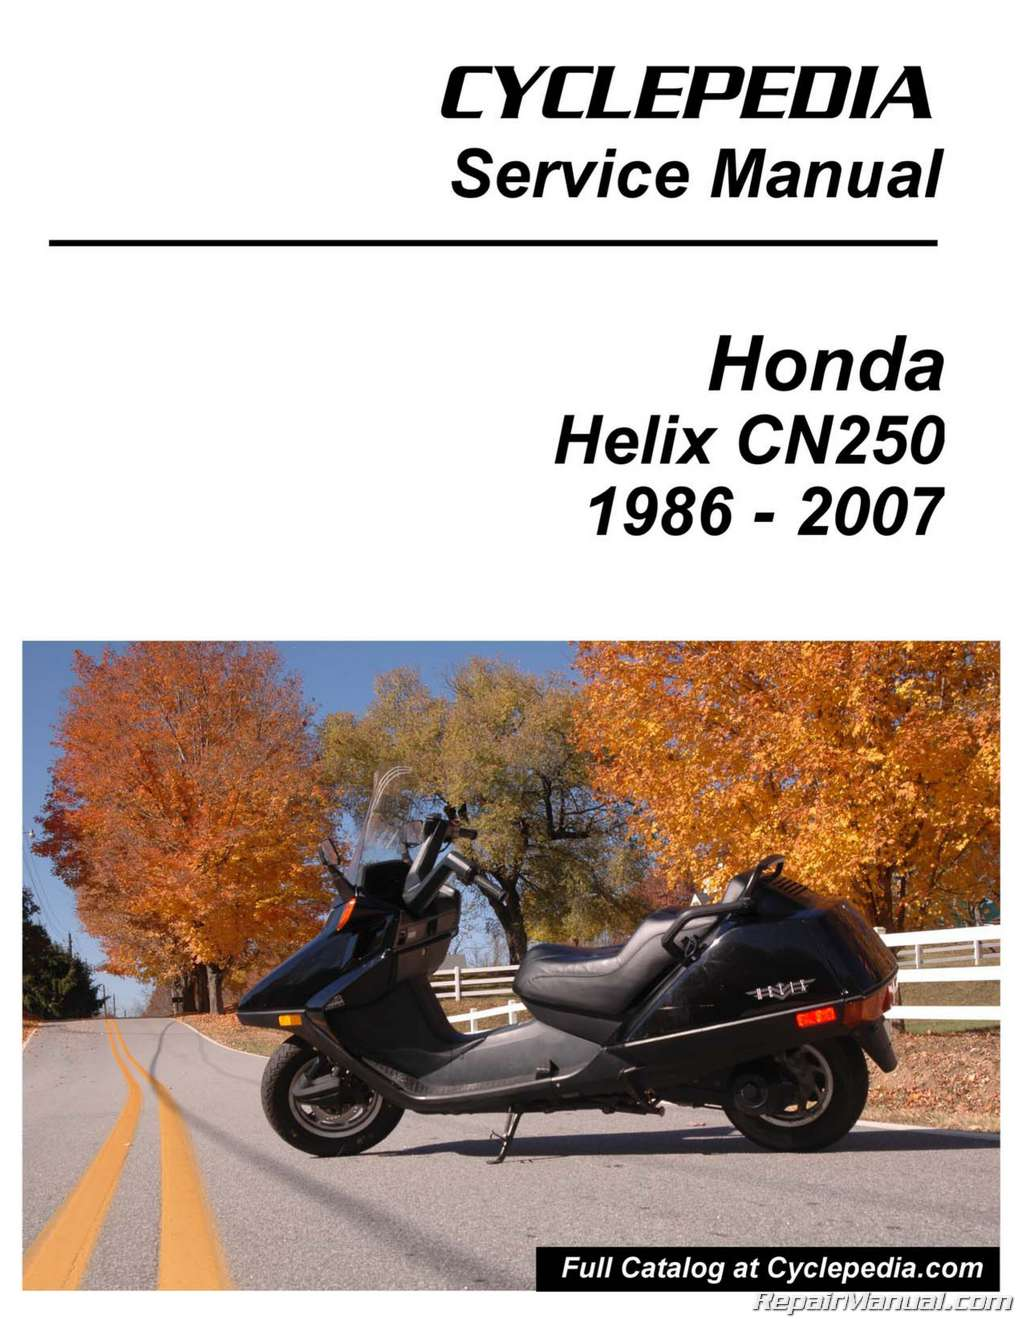 Step By Step Wiring Diagrams Honda Cn250 Helix Cyclepedia Scooter Printed Service Manual